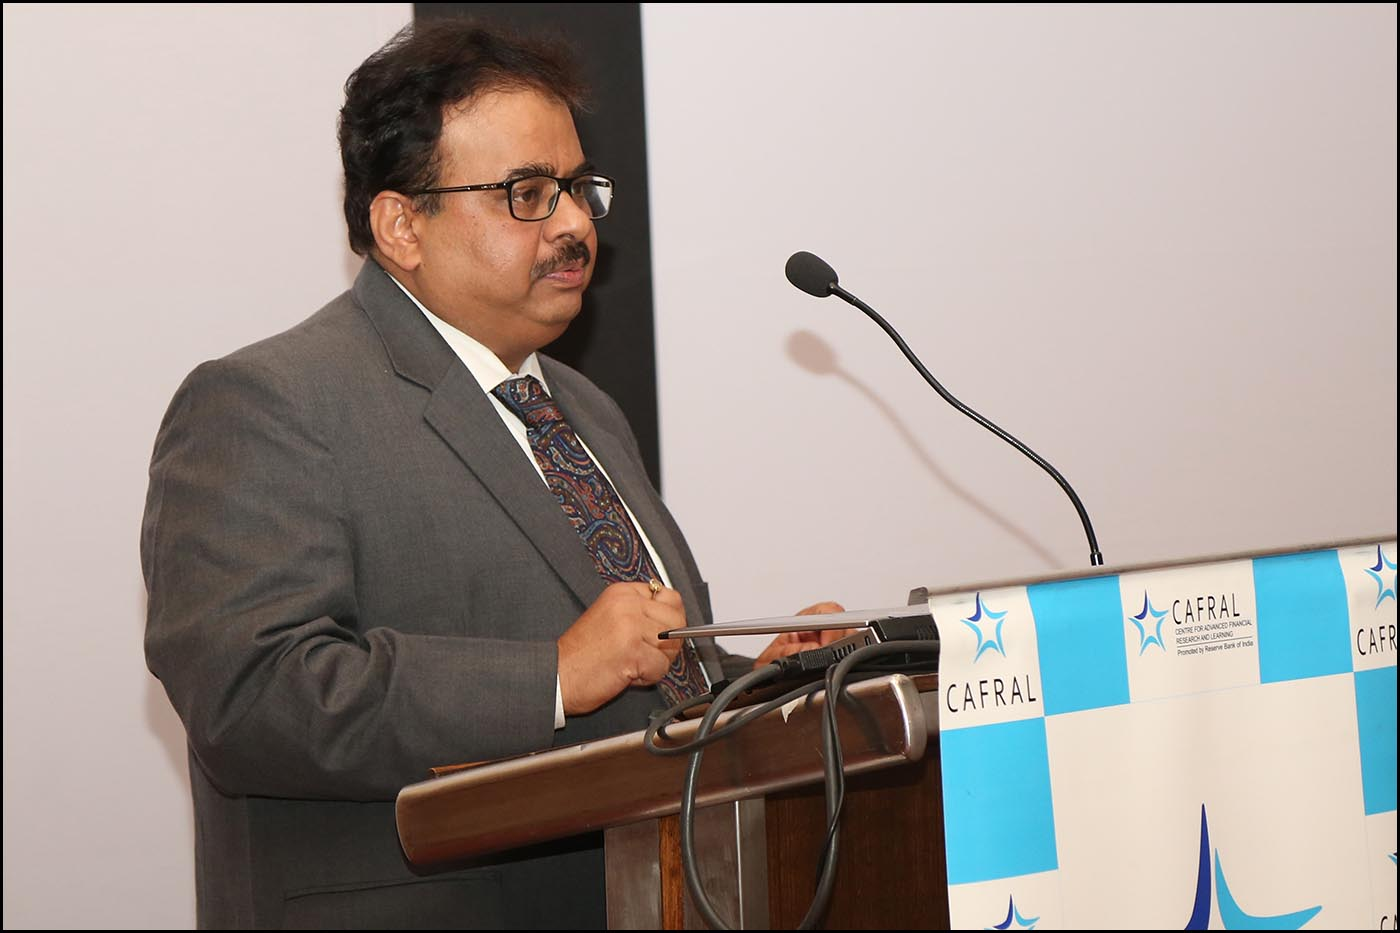 Vivek Srivastava, General Manager, Department of Banking Regulation, Central Office, Reserve Bank of India